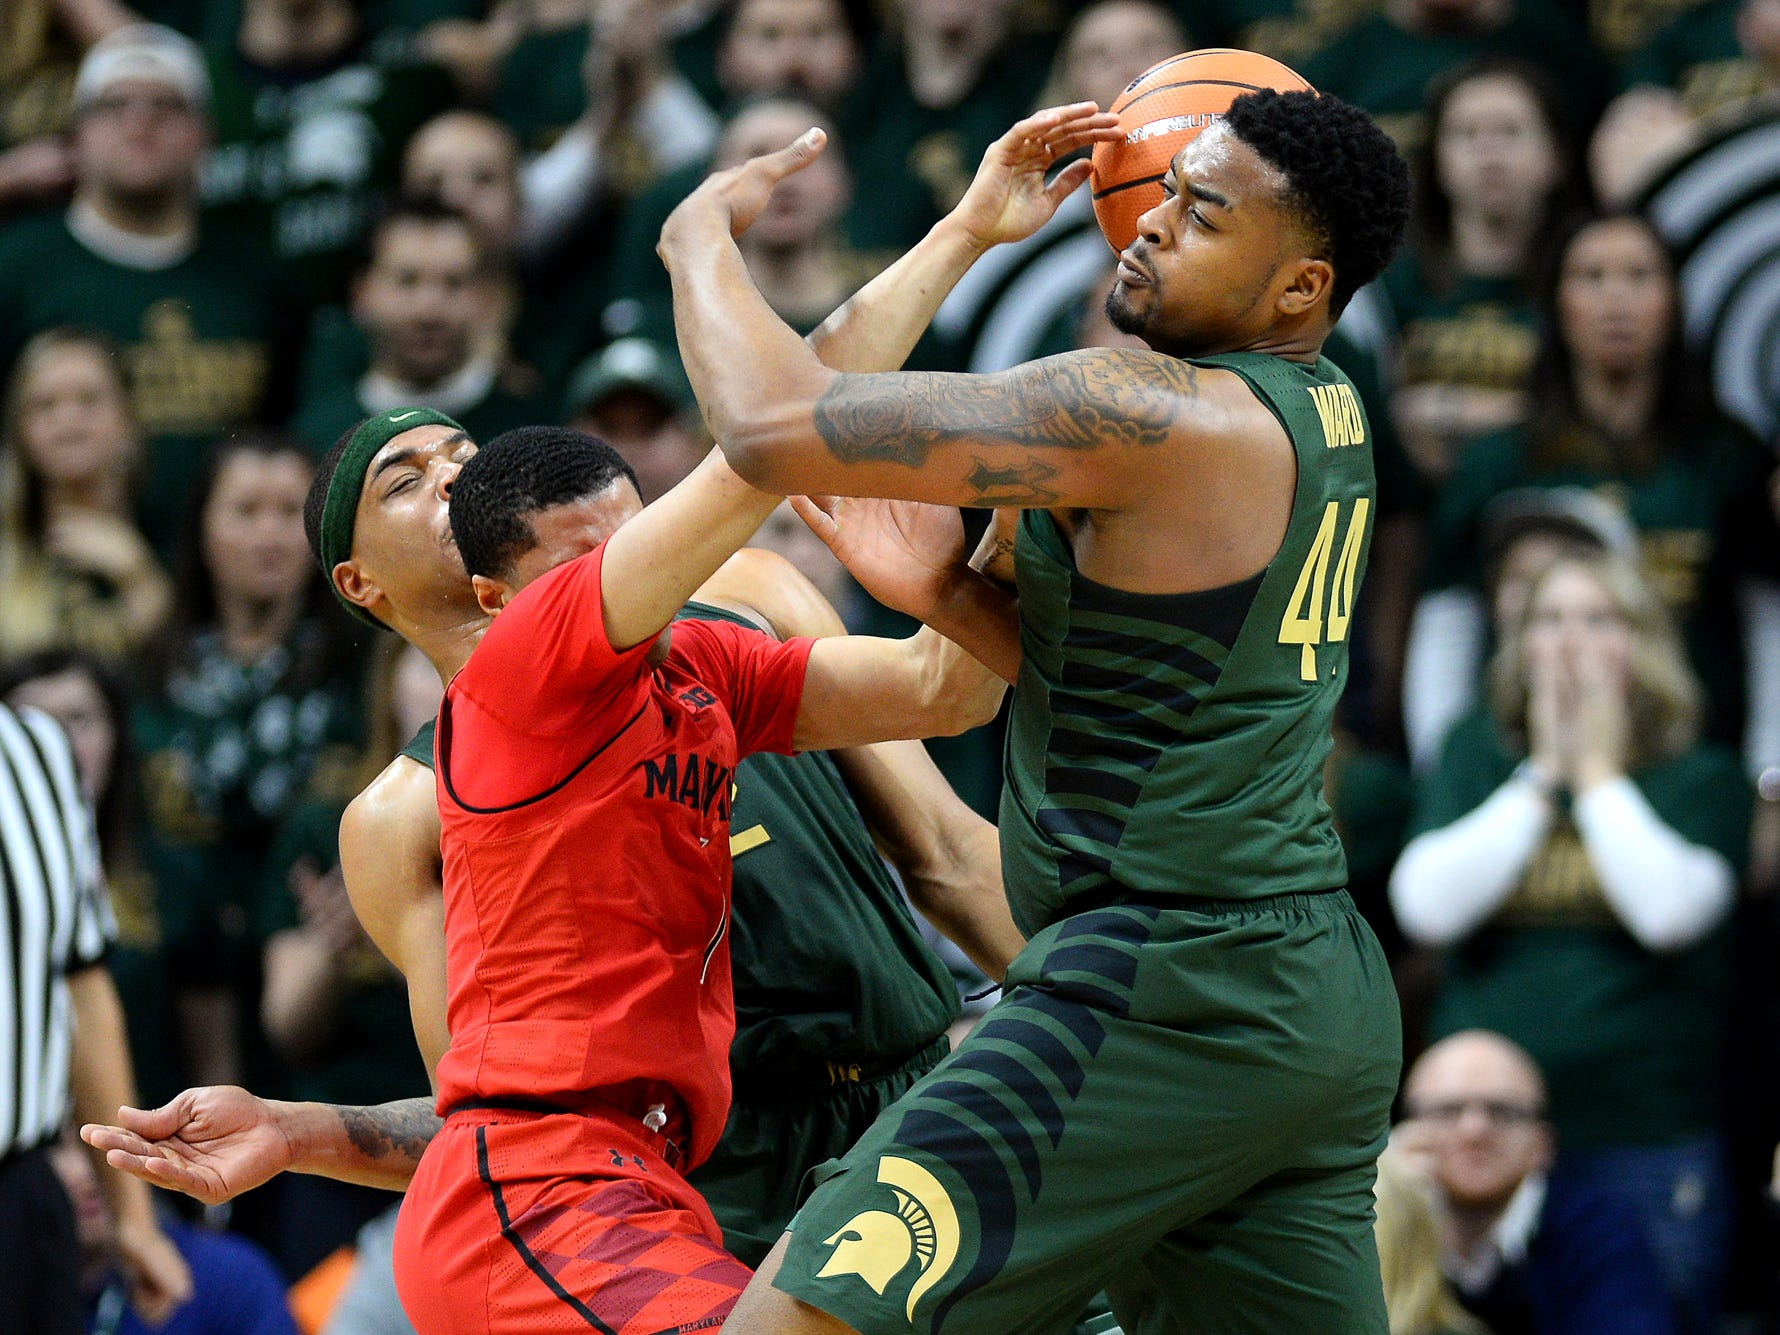 Michigan State's Nick Ward, right, collides with Maryland's Anthony Cowan Jr. during the second half on Thursday, Jan. 4, 2018, at the Breslin Center in East Lansing. Ward was called for a foul on the play. The Spartans won 91-61.